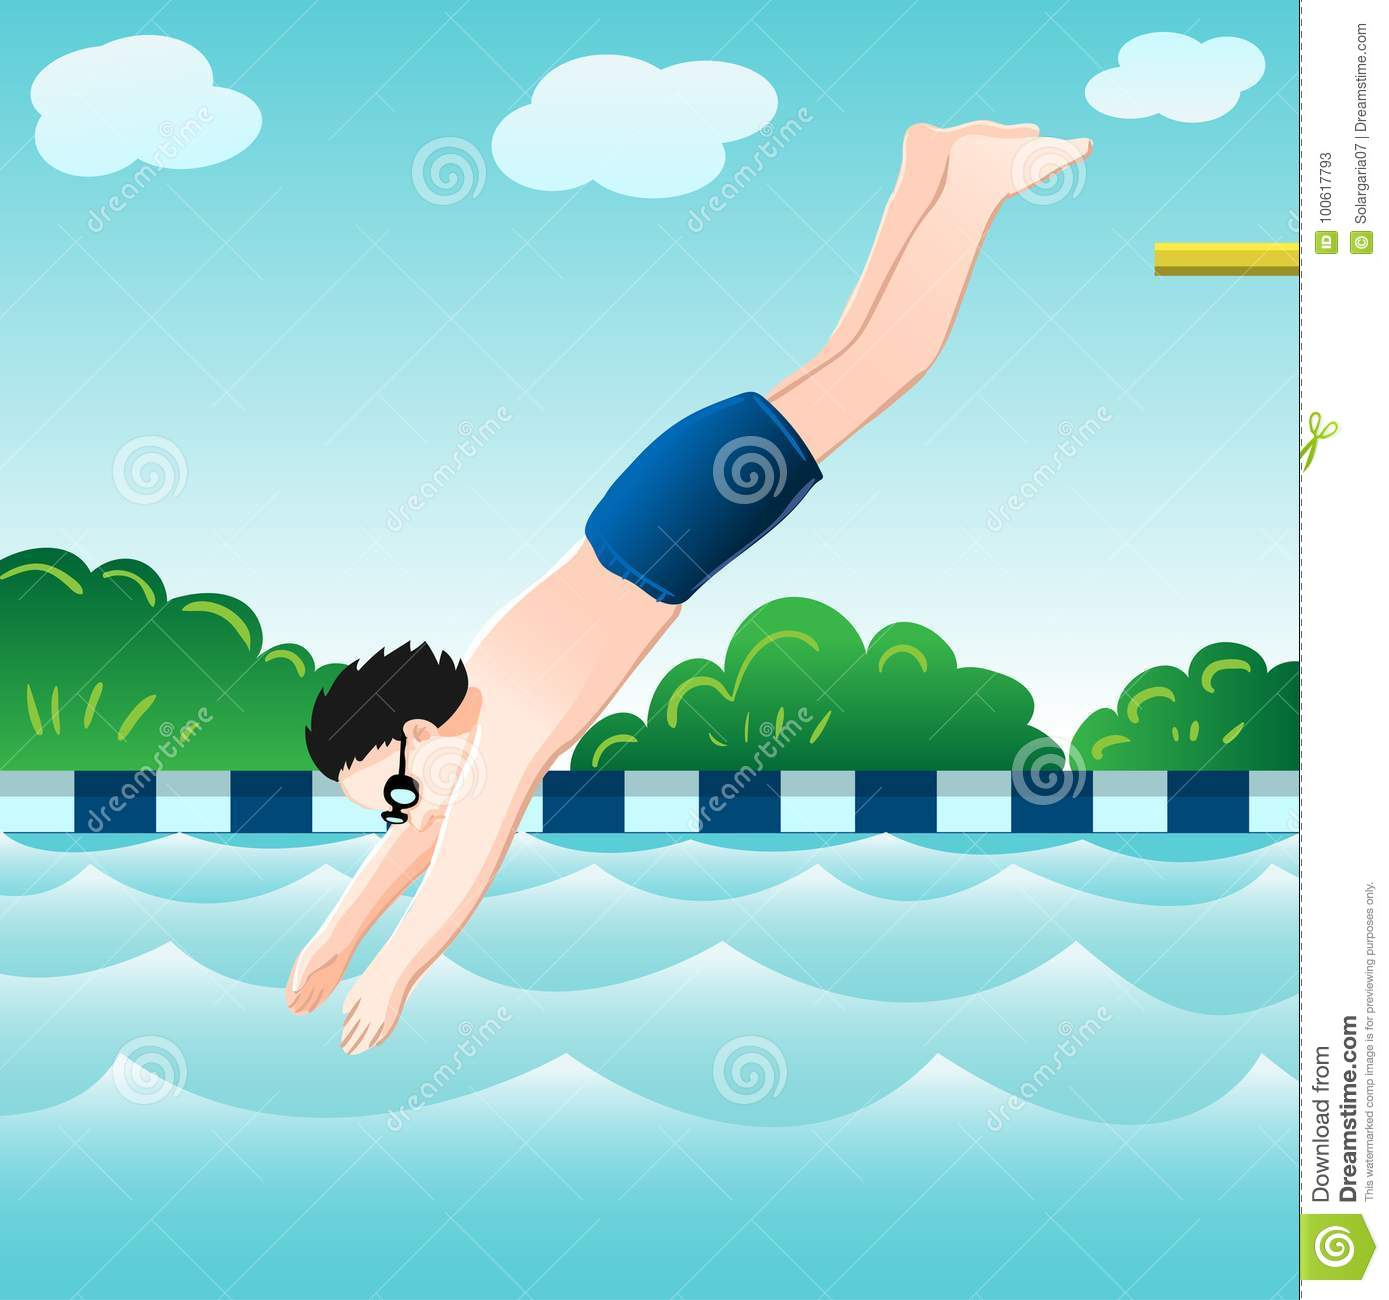 Boy Jumping, Into Water In Pool-Vector Illustration Stock Vector